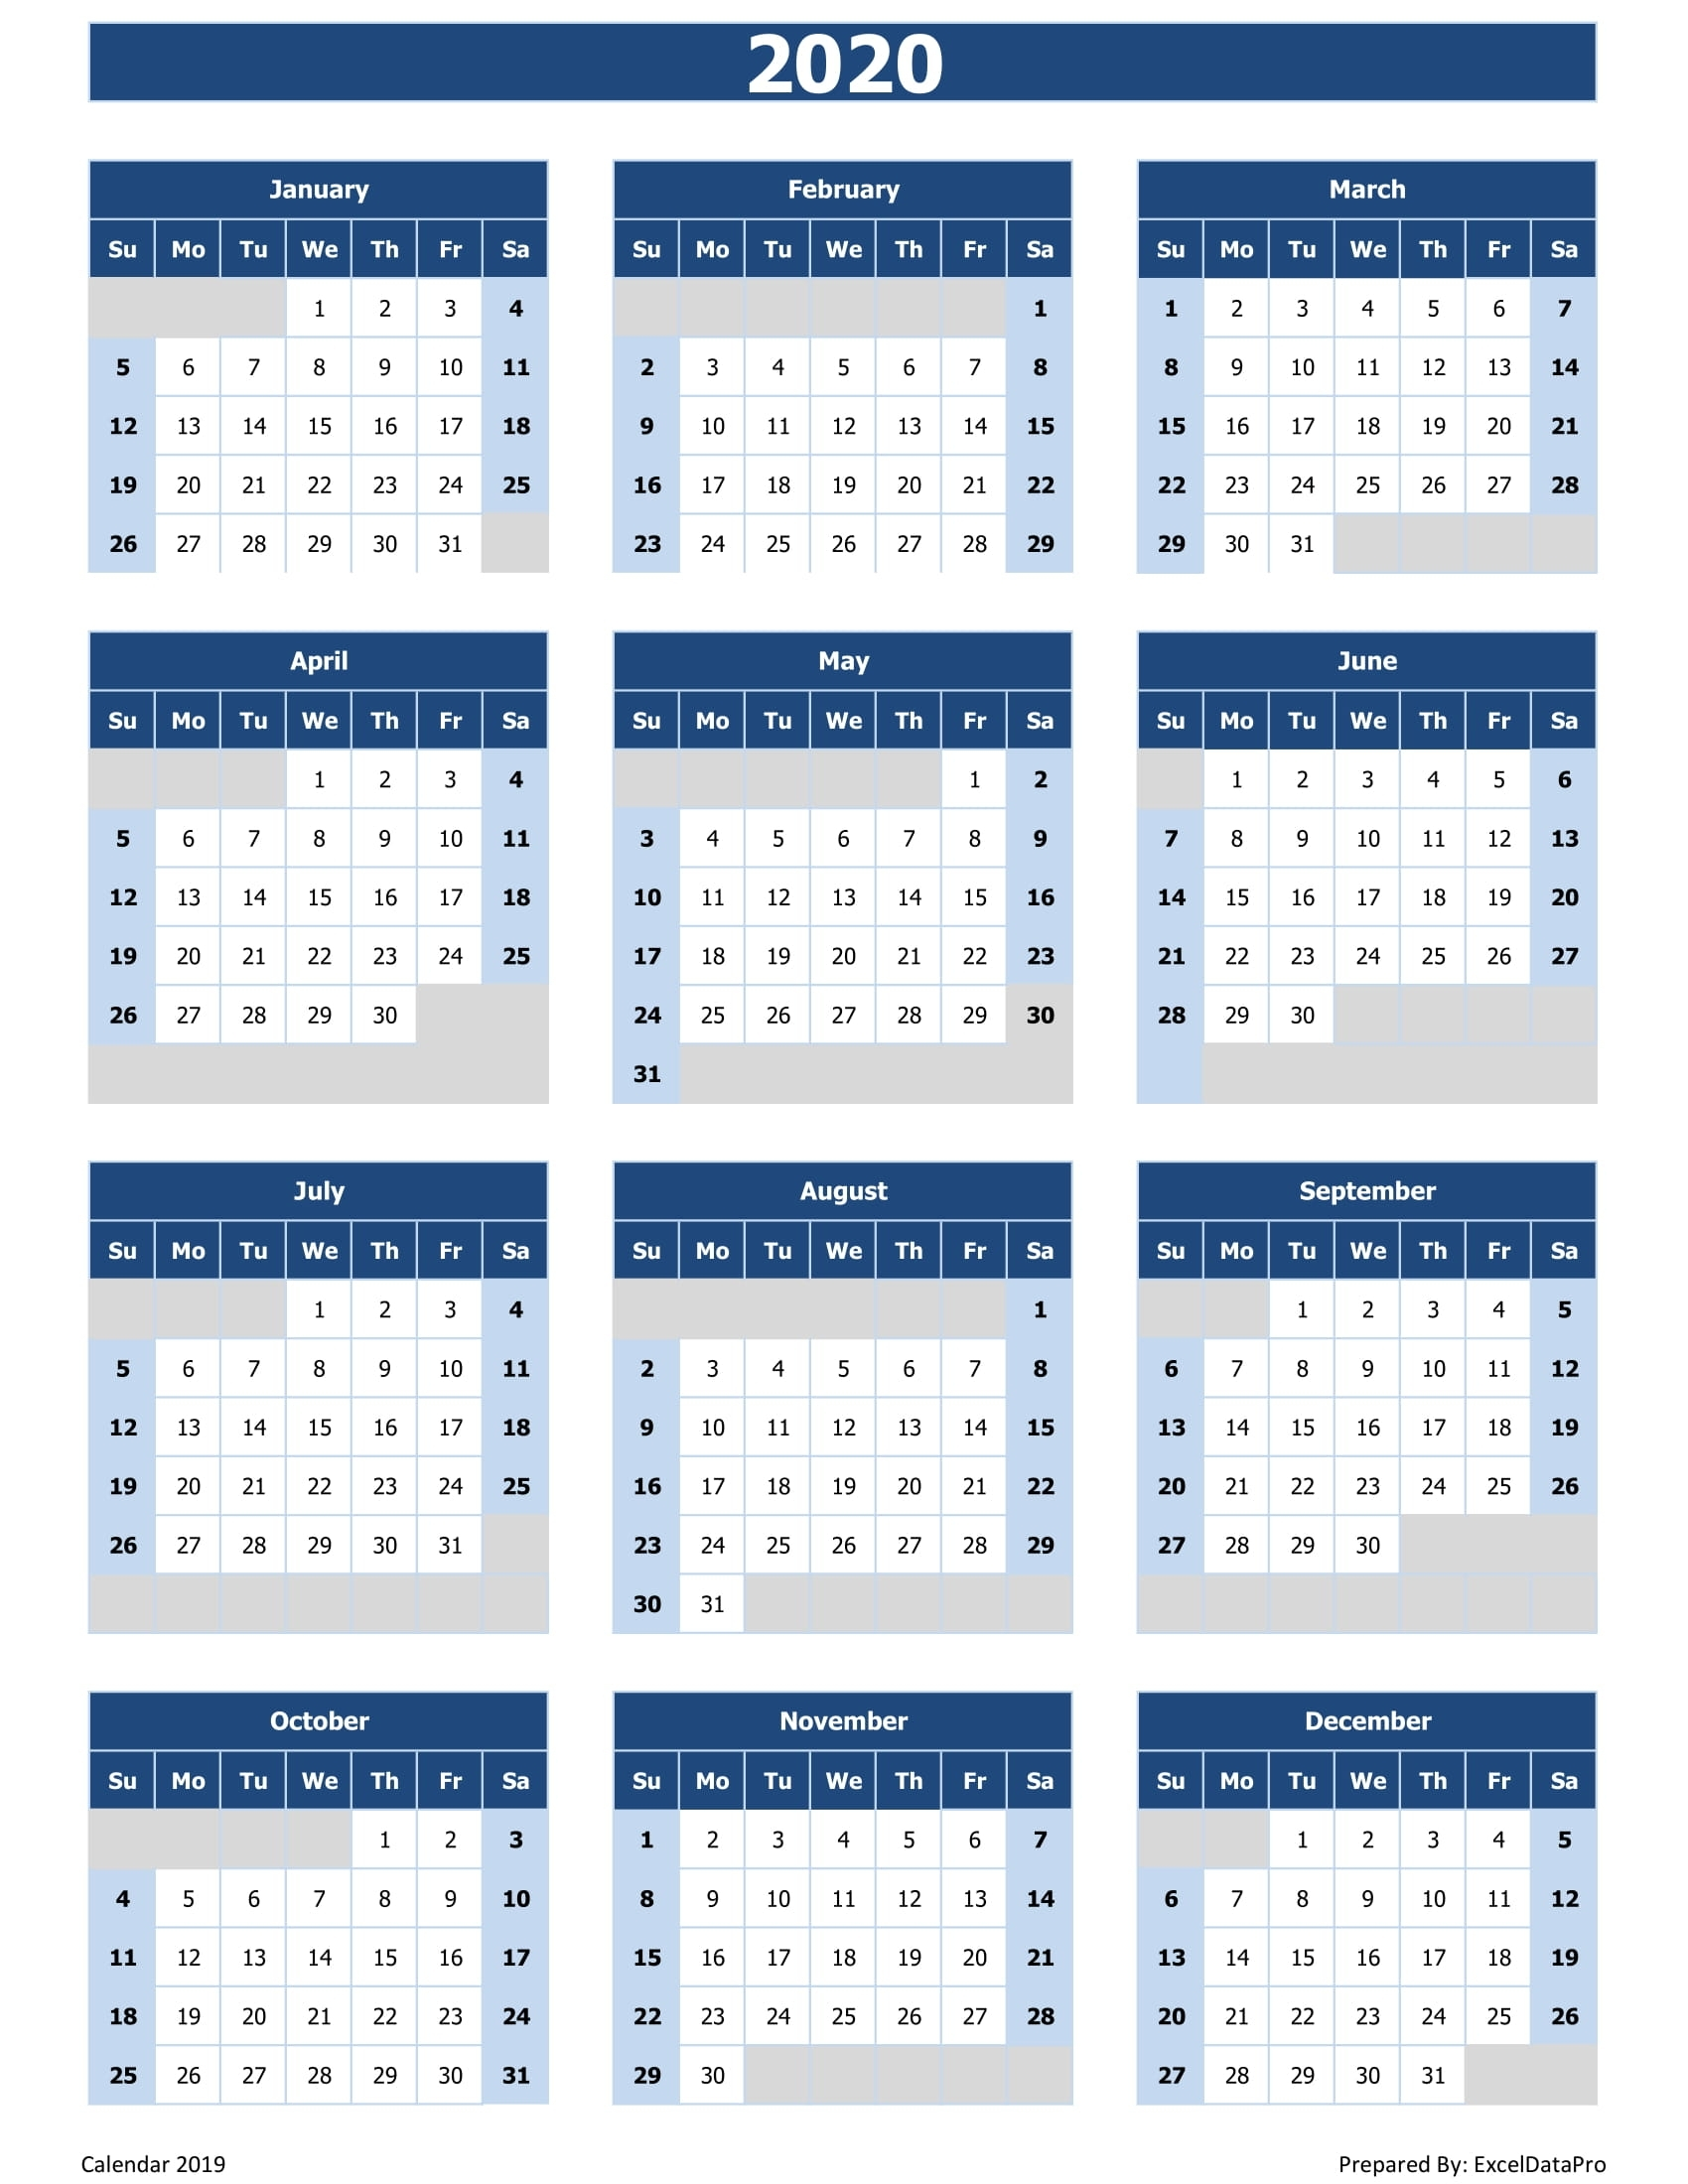 2020 Calendar Excel Templates, Printable Pdfs & Images - Exceldatapro with 2020 Calendar